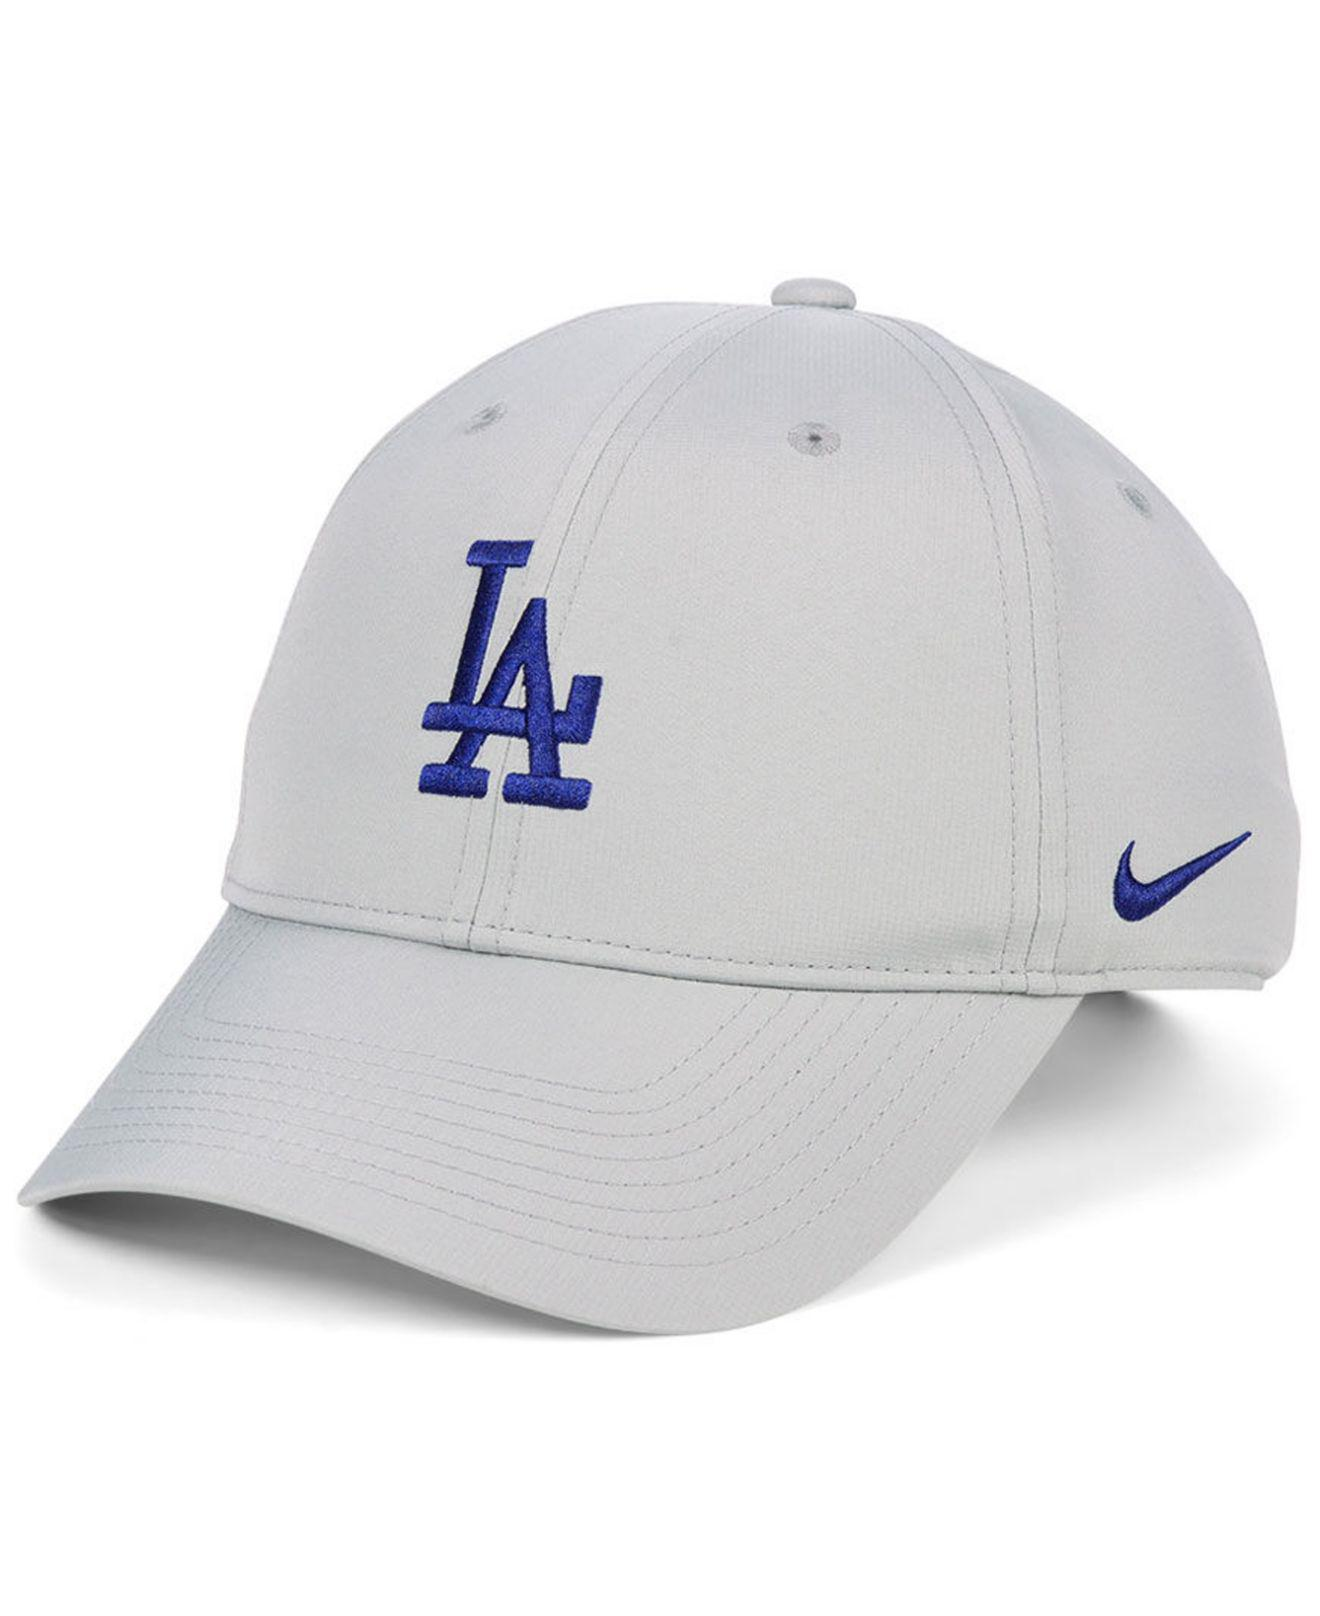 low priced 18cc2 849d1 ... Los Angeles Dodgers Legacy Performance Cap for Men - Lyst. View  fullscreen